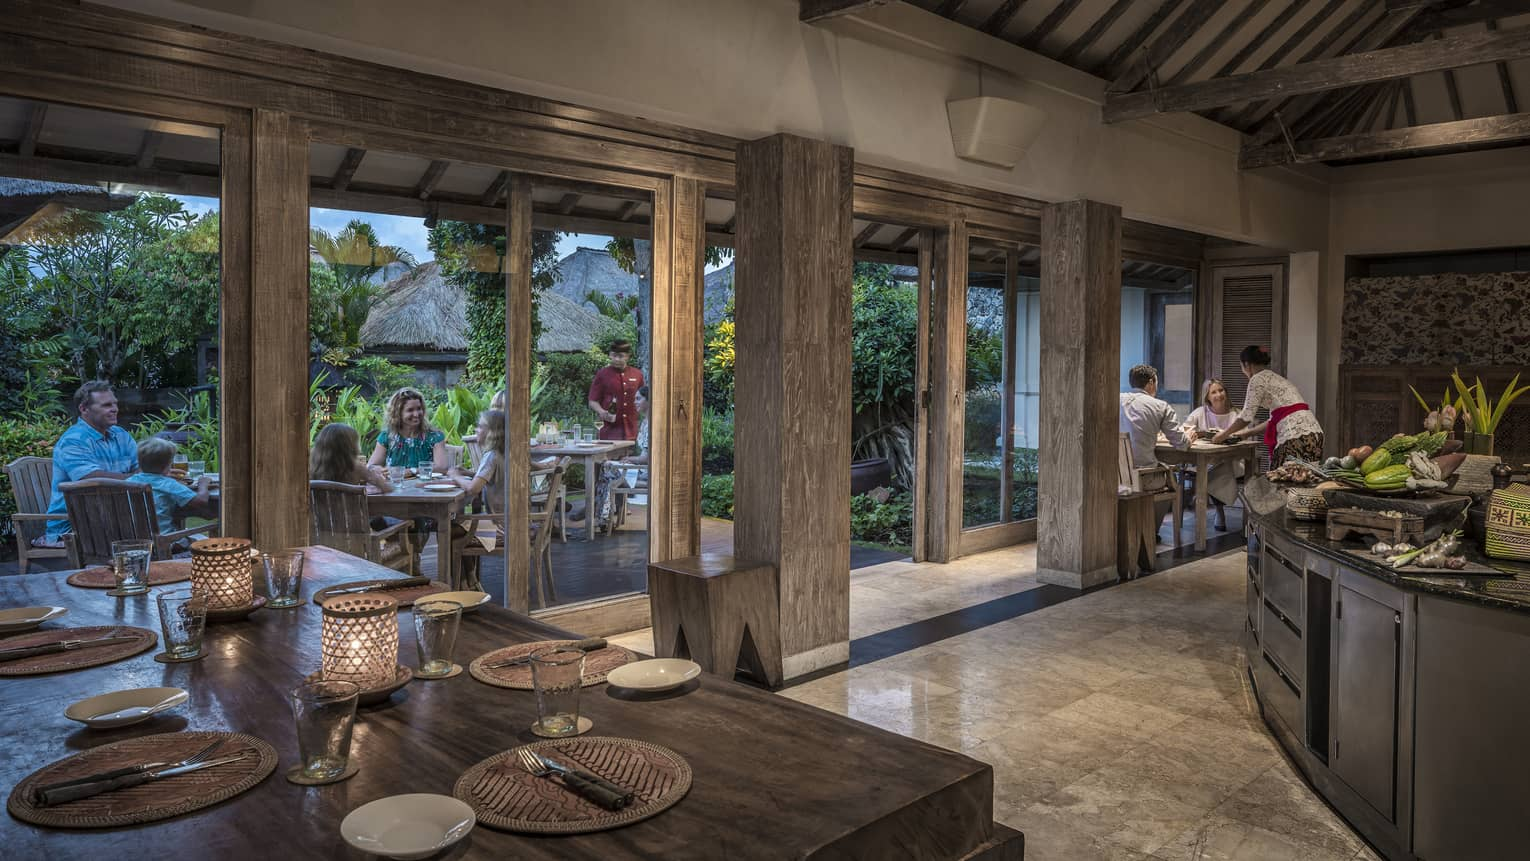 Place-settings are set up for guests at the Jala Resturant in Bali